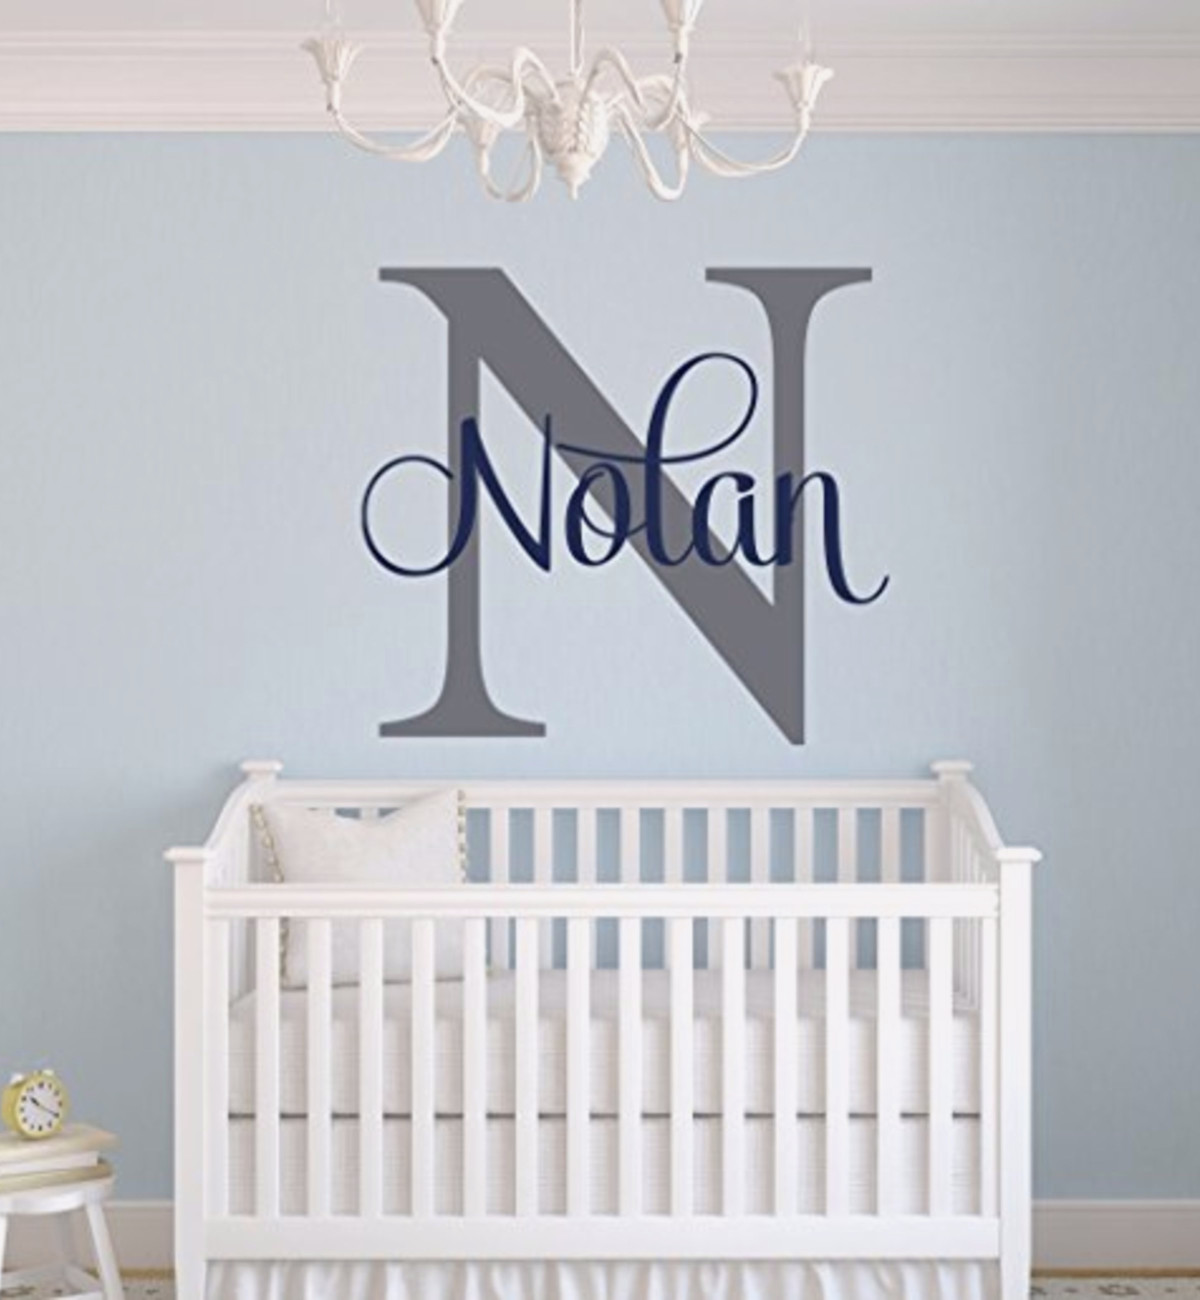 Baby boy nursery wall decor ideas best idea garden for Baby room wall decoration